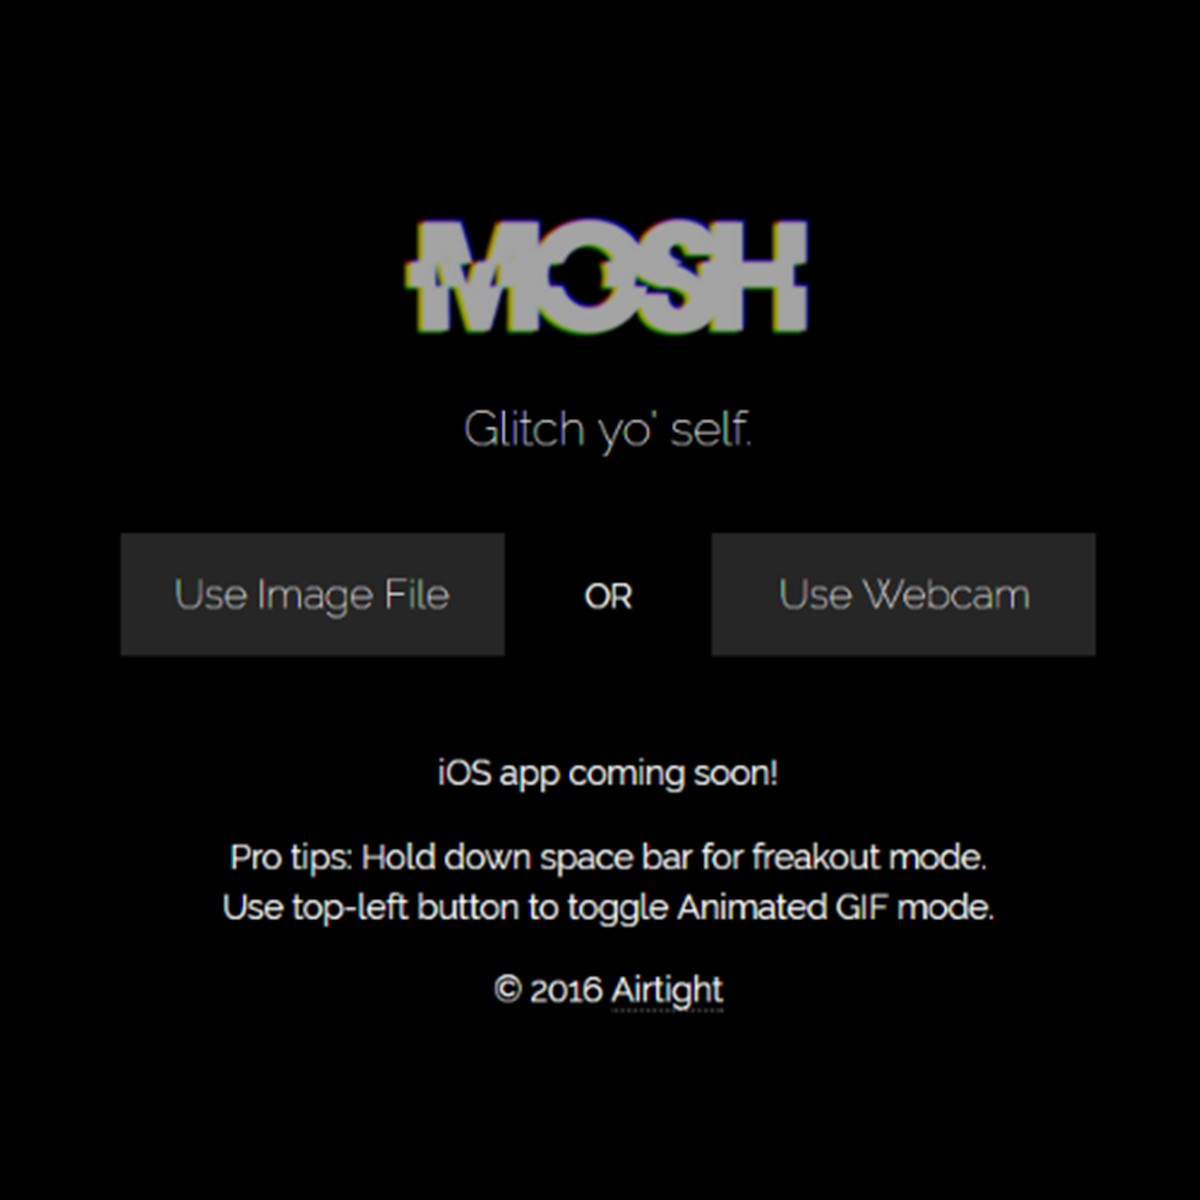 MOSH glitch effects Alternatives and Similar Websites and Apps